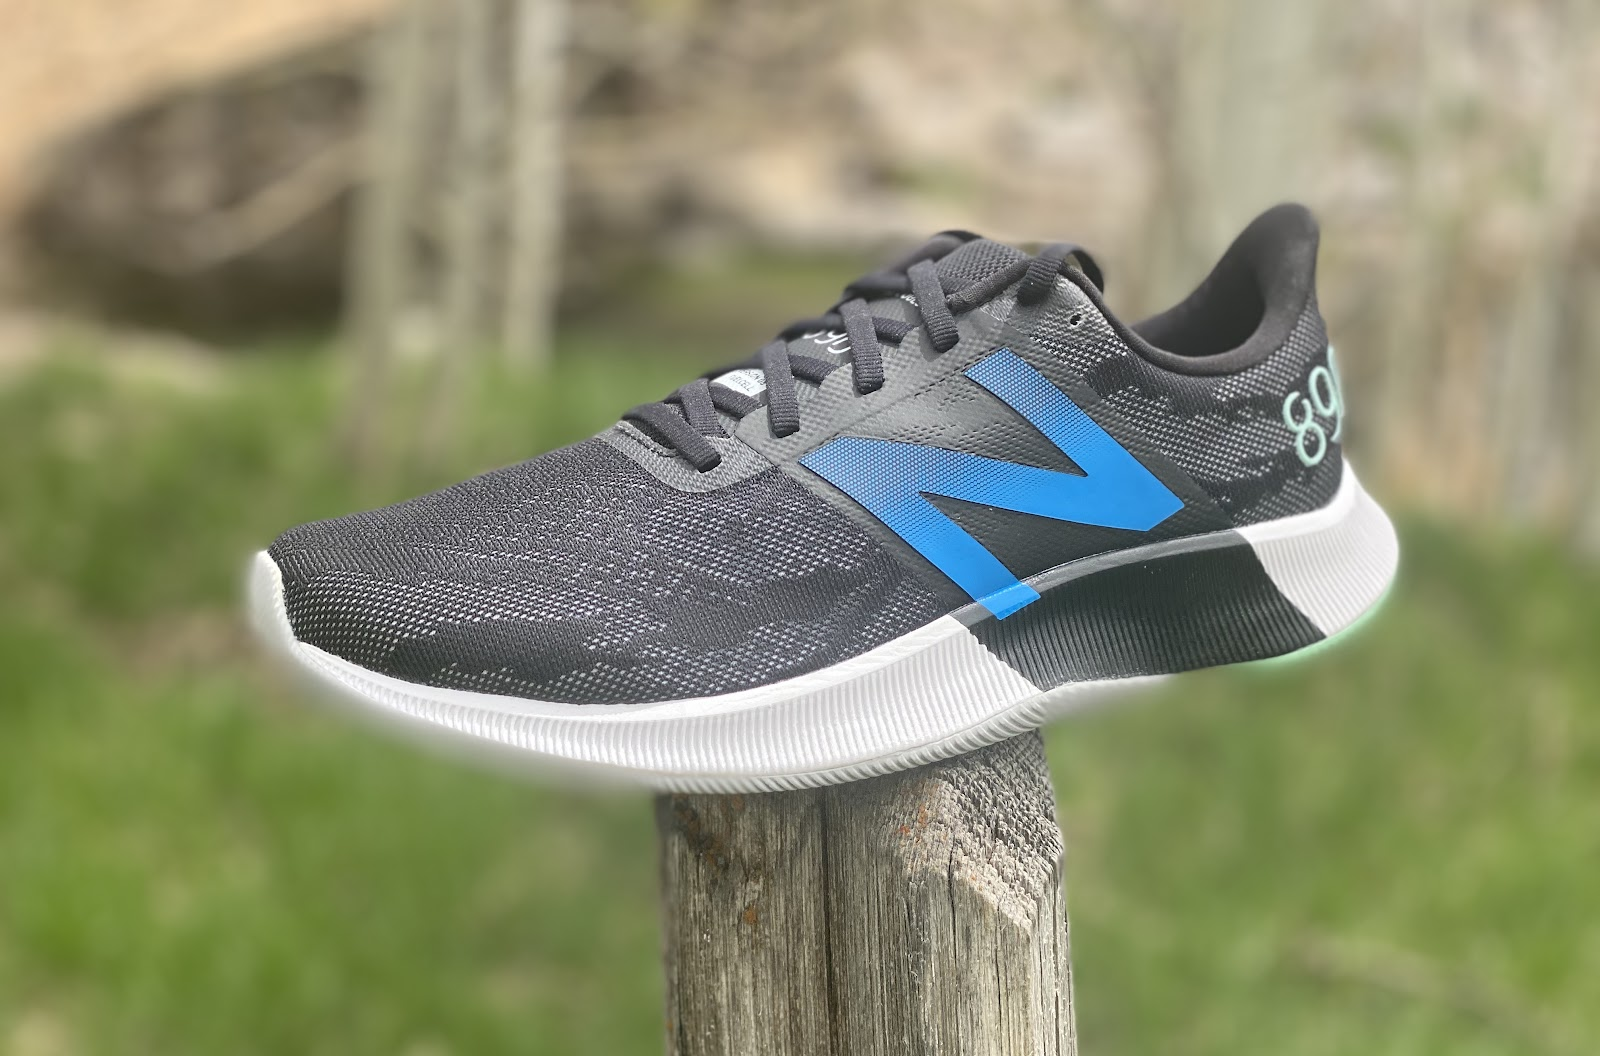 Road Trail Run: New Balance FuelCell 890 v8 Multi Tester Review